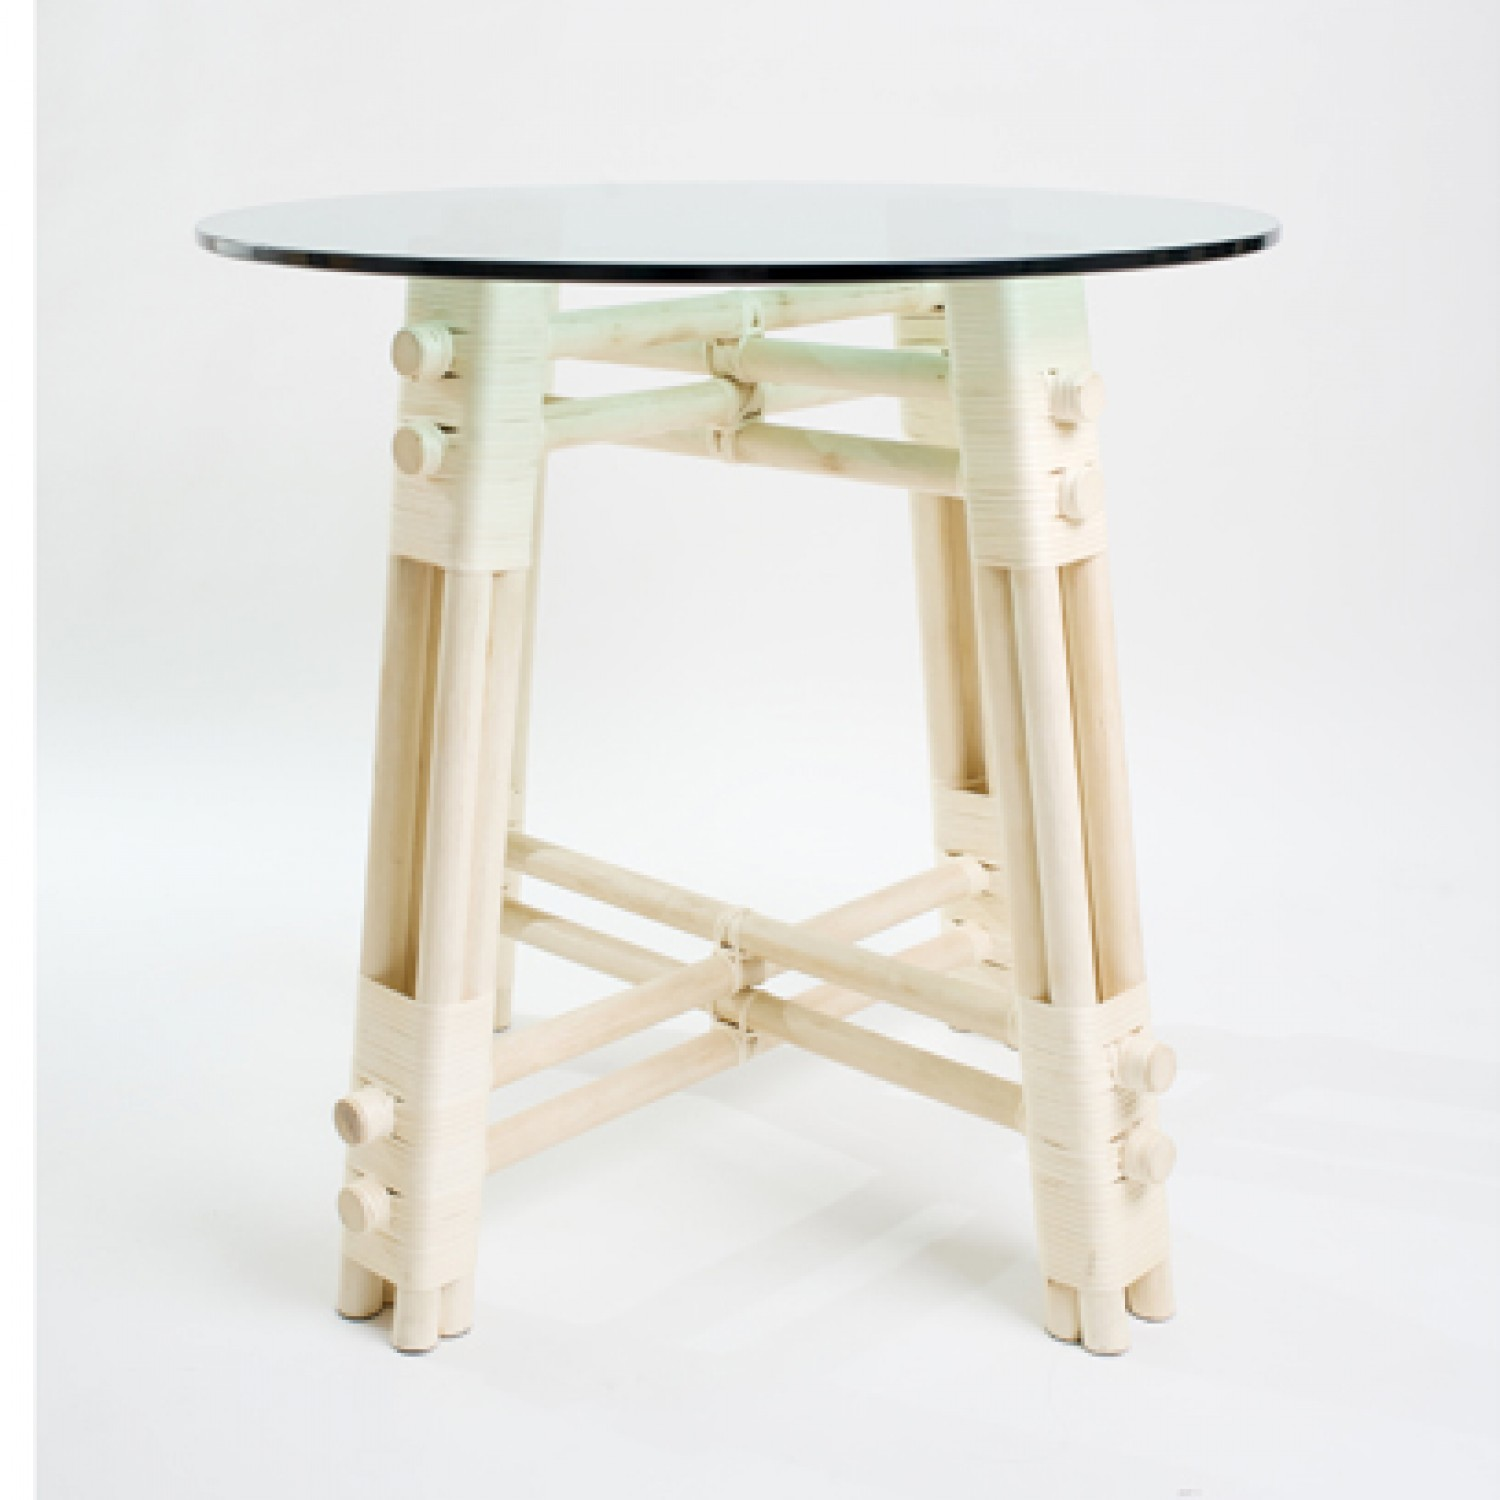 Enoki Dining Table